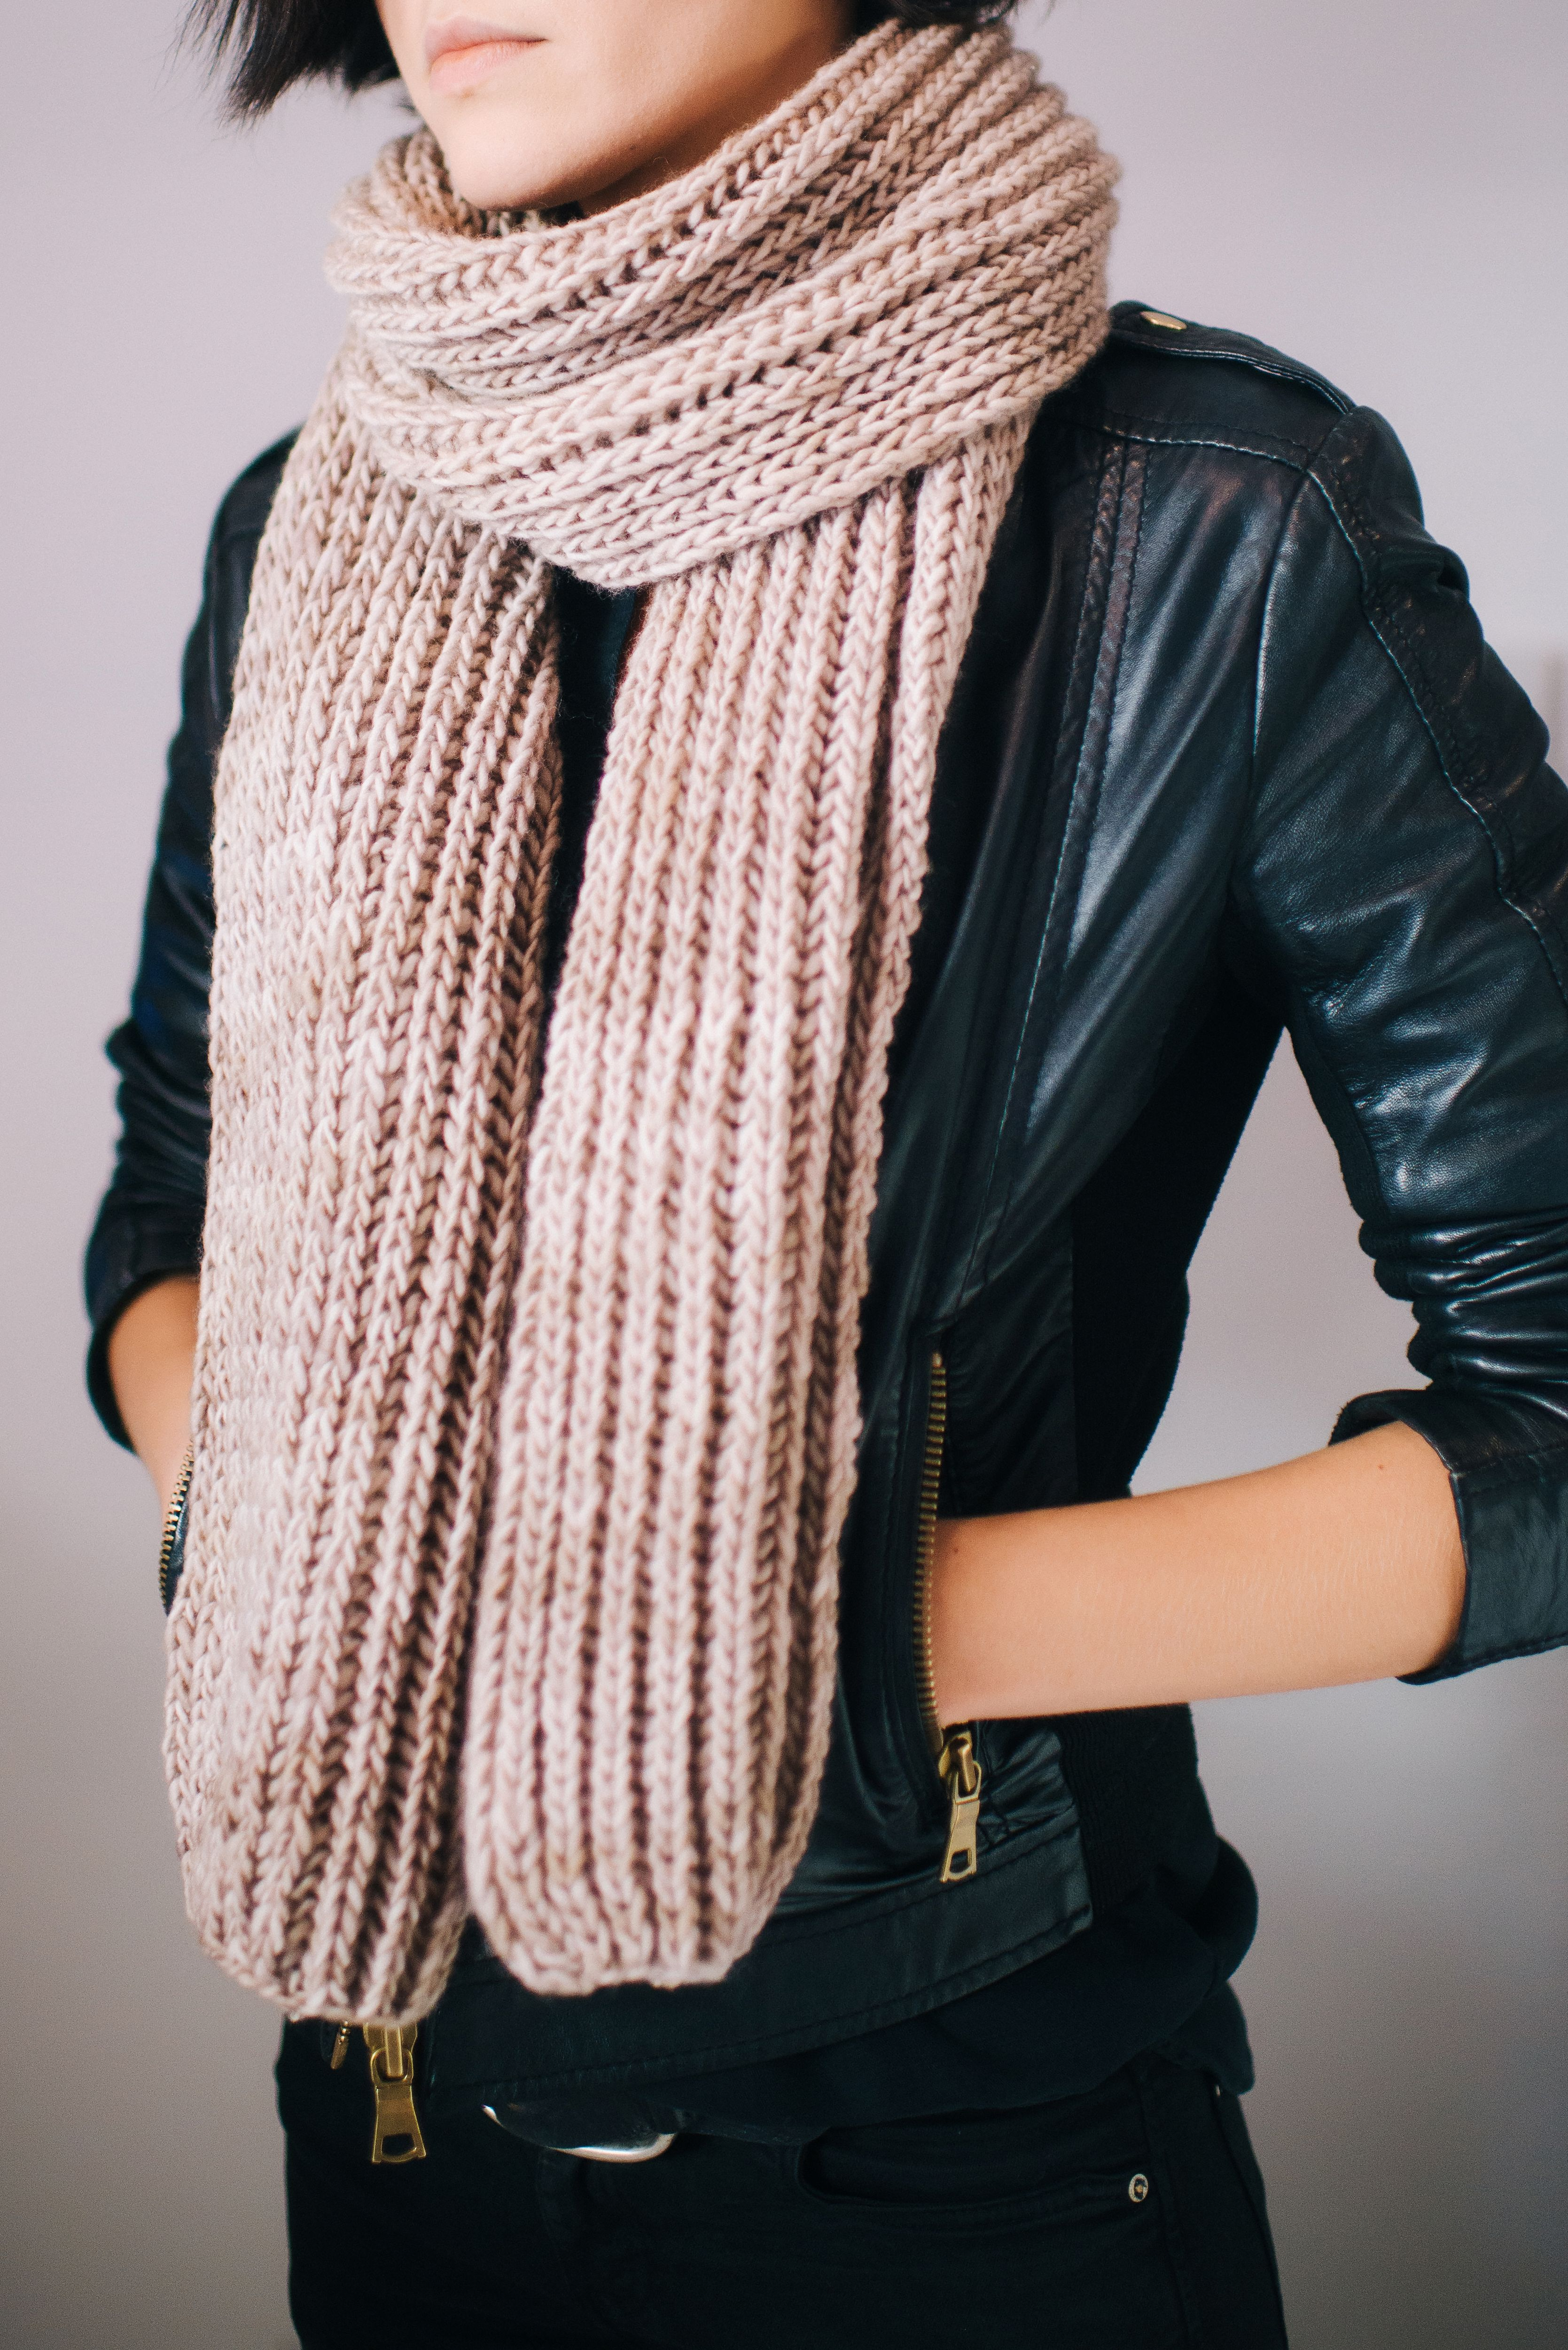 377c256a1 Chunky Knit Scarf - perfect for fall. FREE KNITTING PATTERN. Check it now  or save for later.